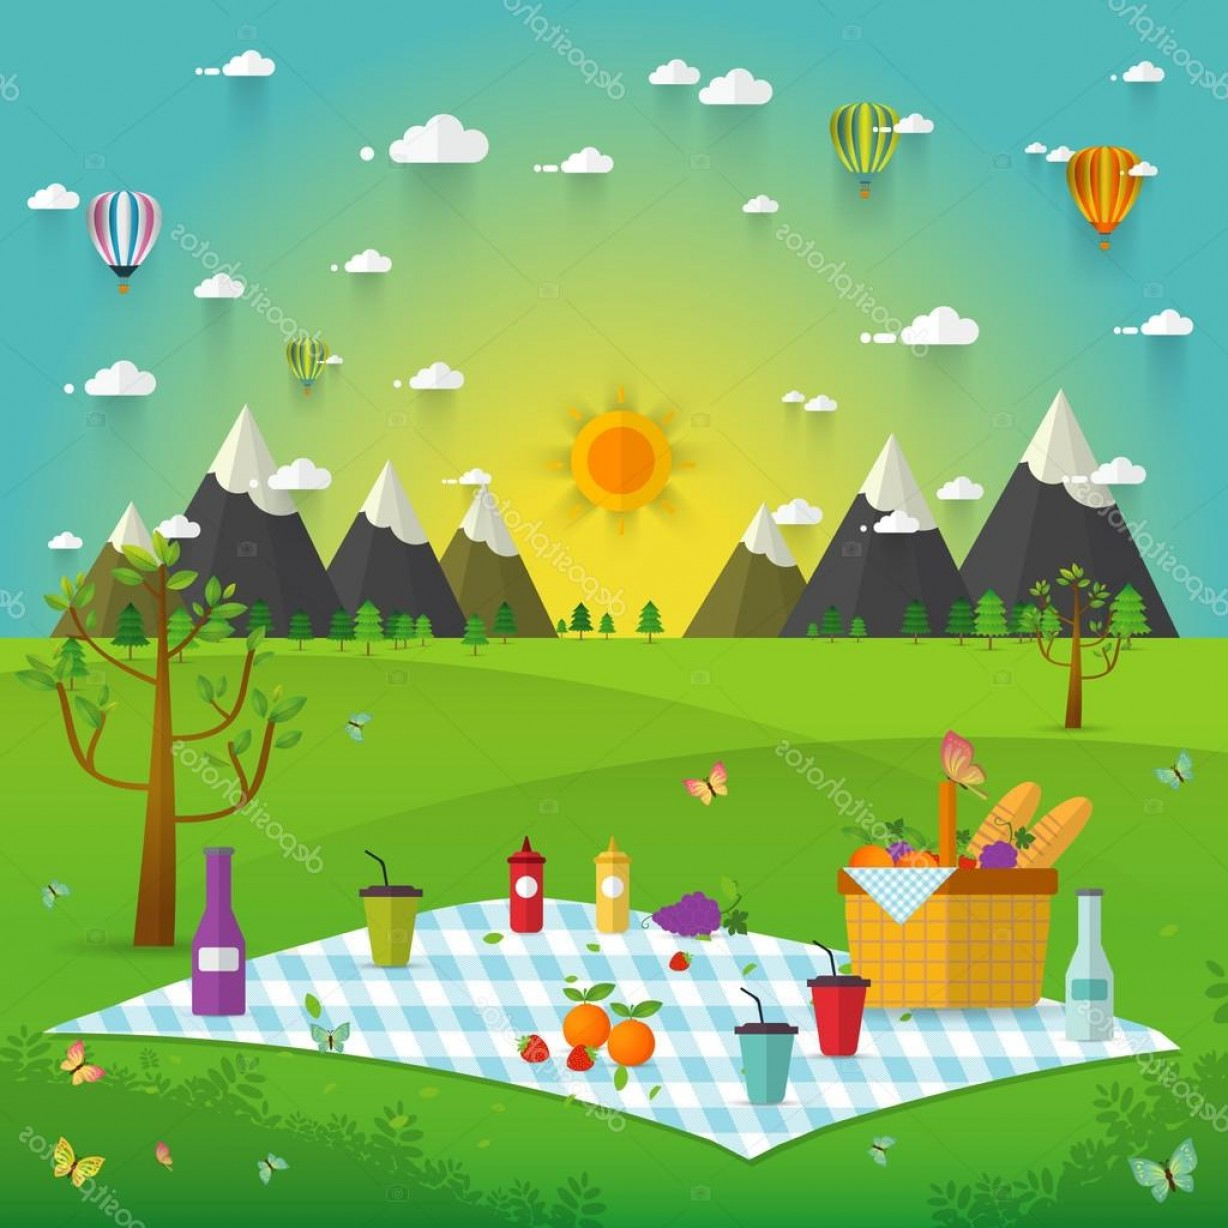 Picnic Vector Scenery: Stock Illustration Outdoor Picnic In Mountains